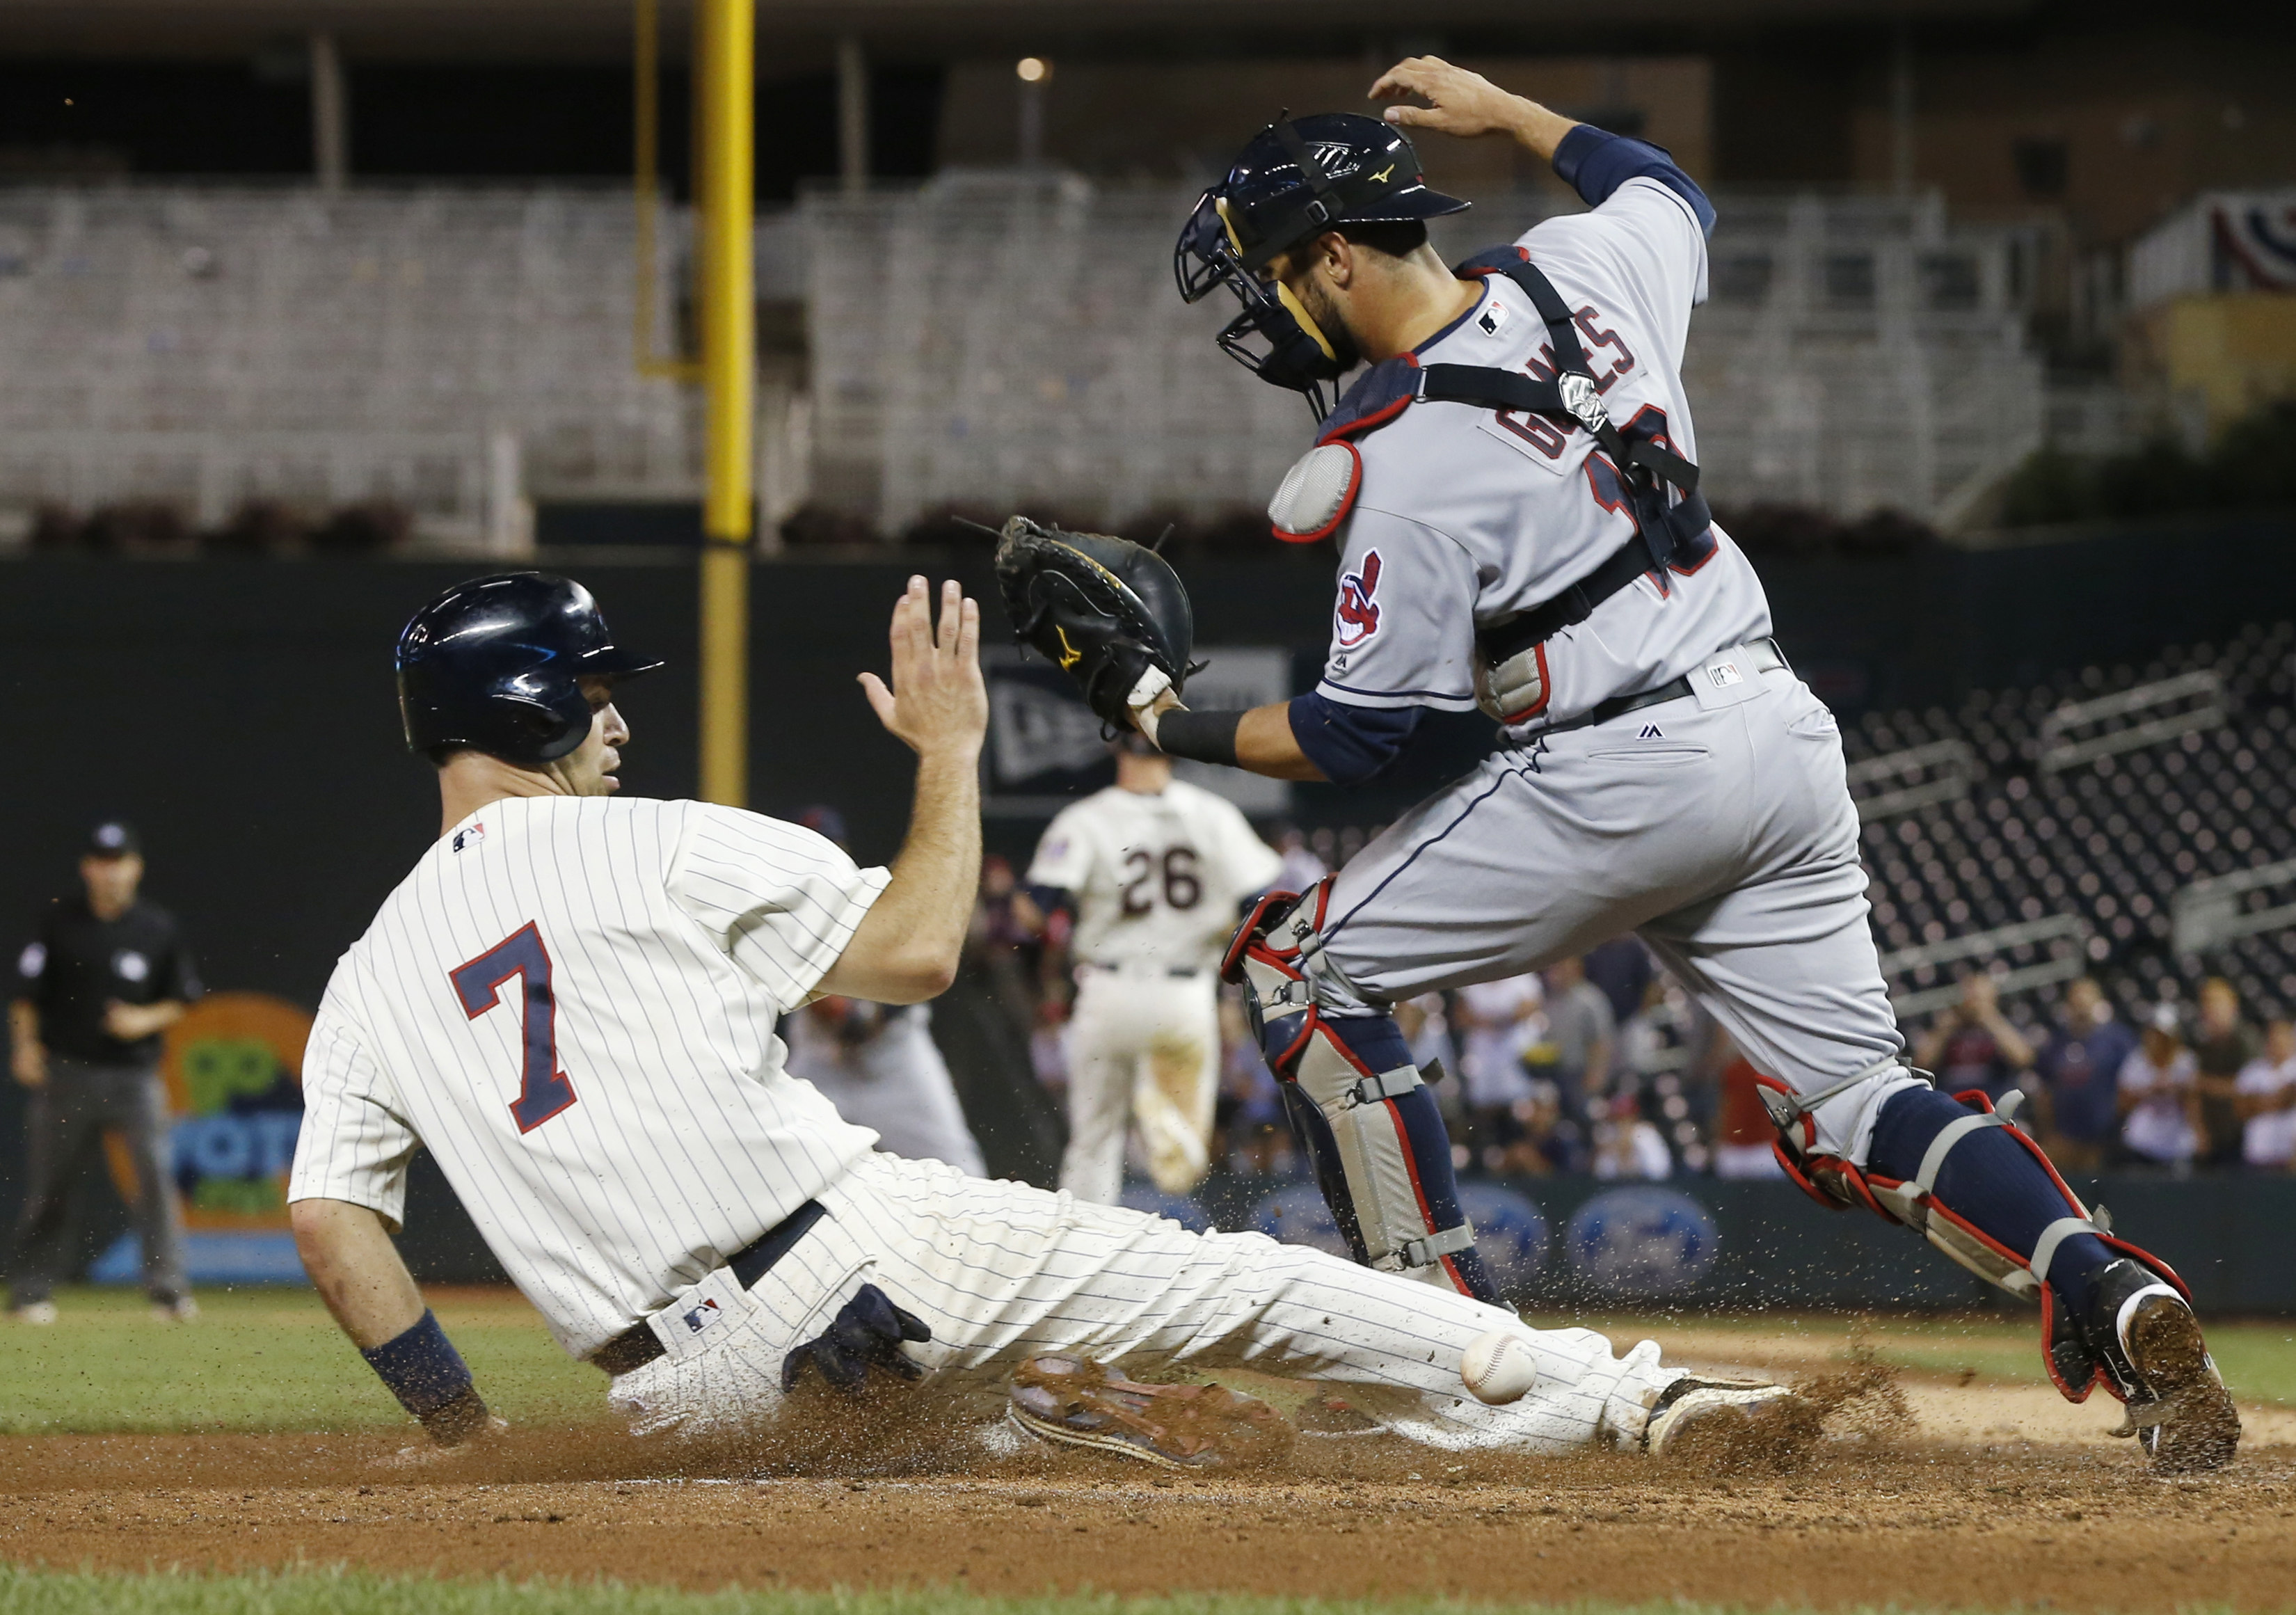 Minnesota Twins' Joe Mauer scores the go-ahead run as Cleveland Indians catcher Yan Gomes can't handle the throw to the plate on a fielder's choice with the bases loaded in the 11th inning of a baseball game Sunday, July 17, 2016, in Minneapolis. The Twin